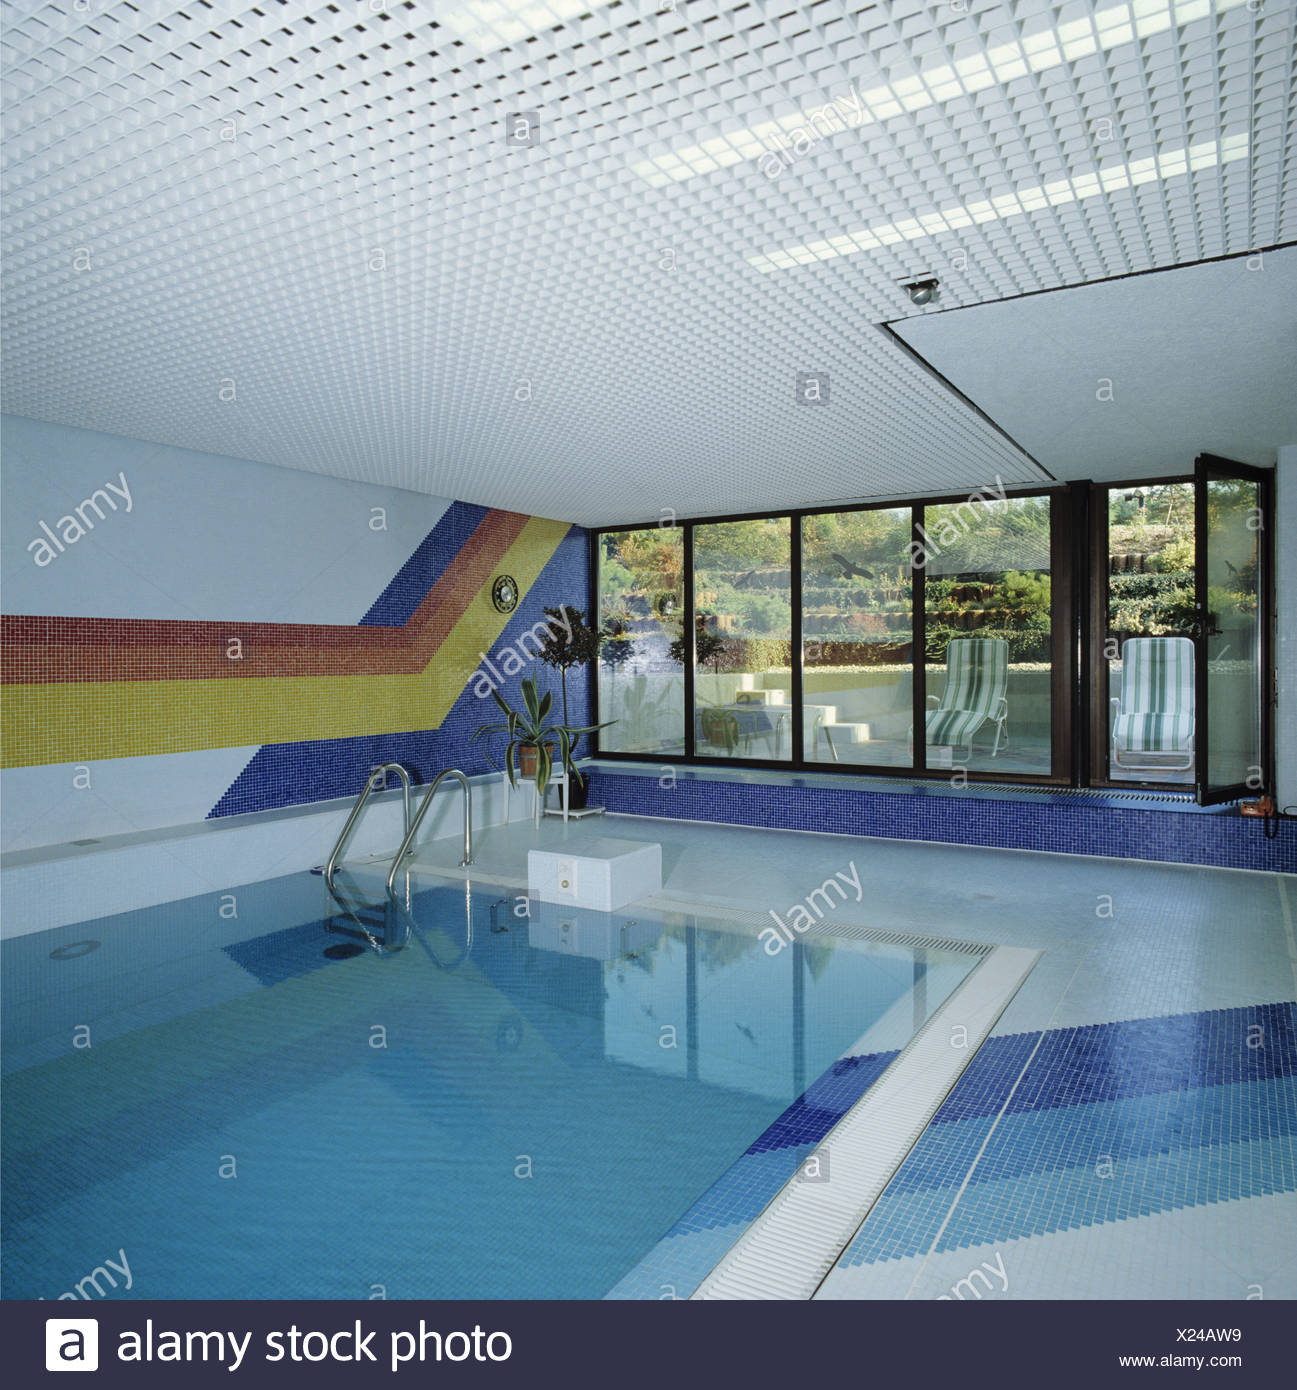 Colorful striped tiling on wall of modern indoor swimming pool with ...